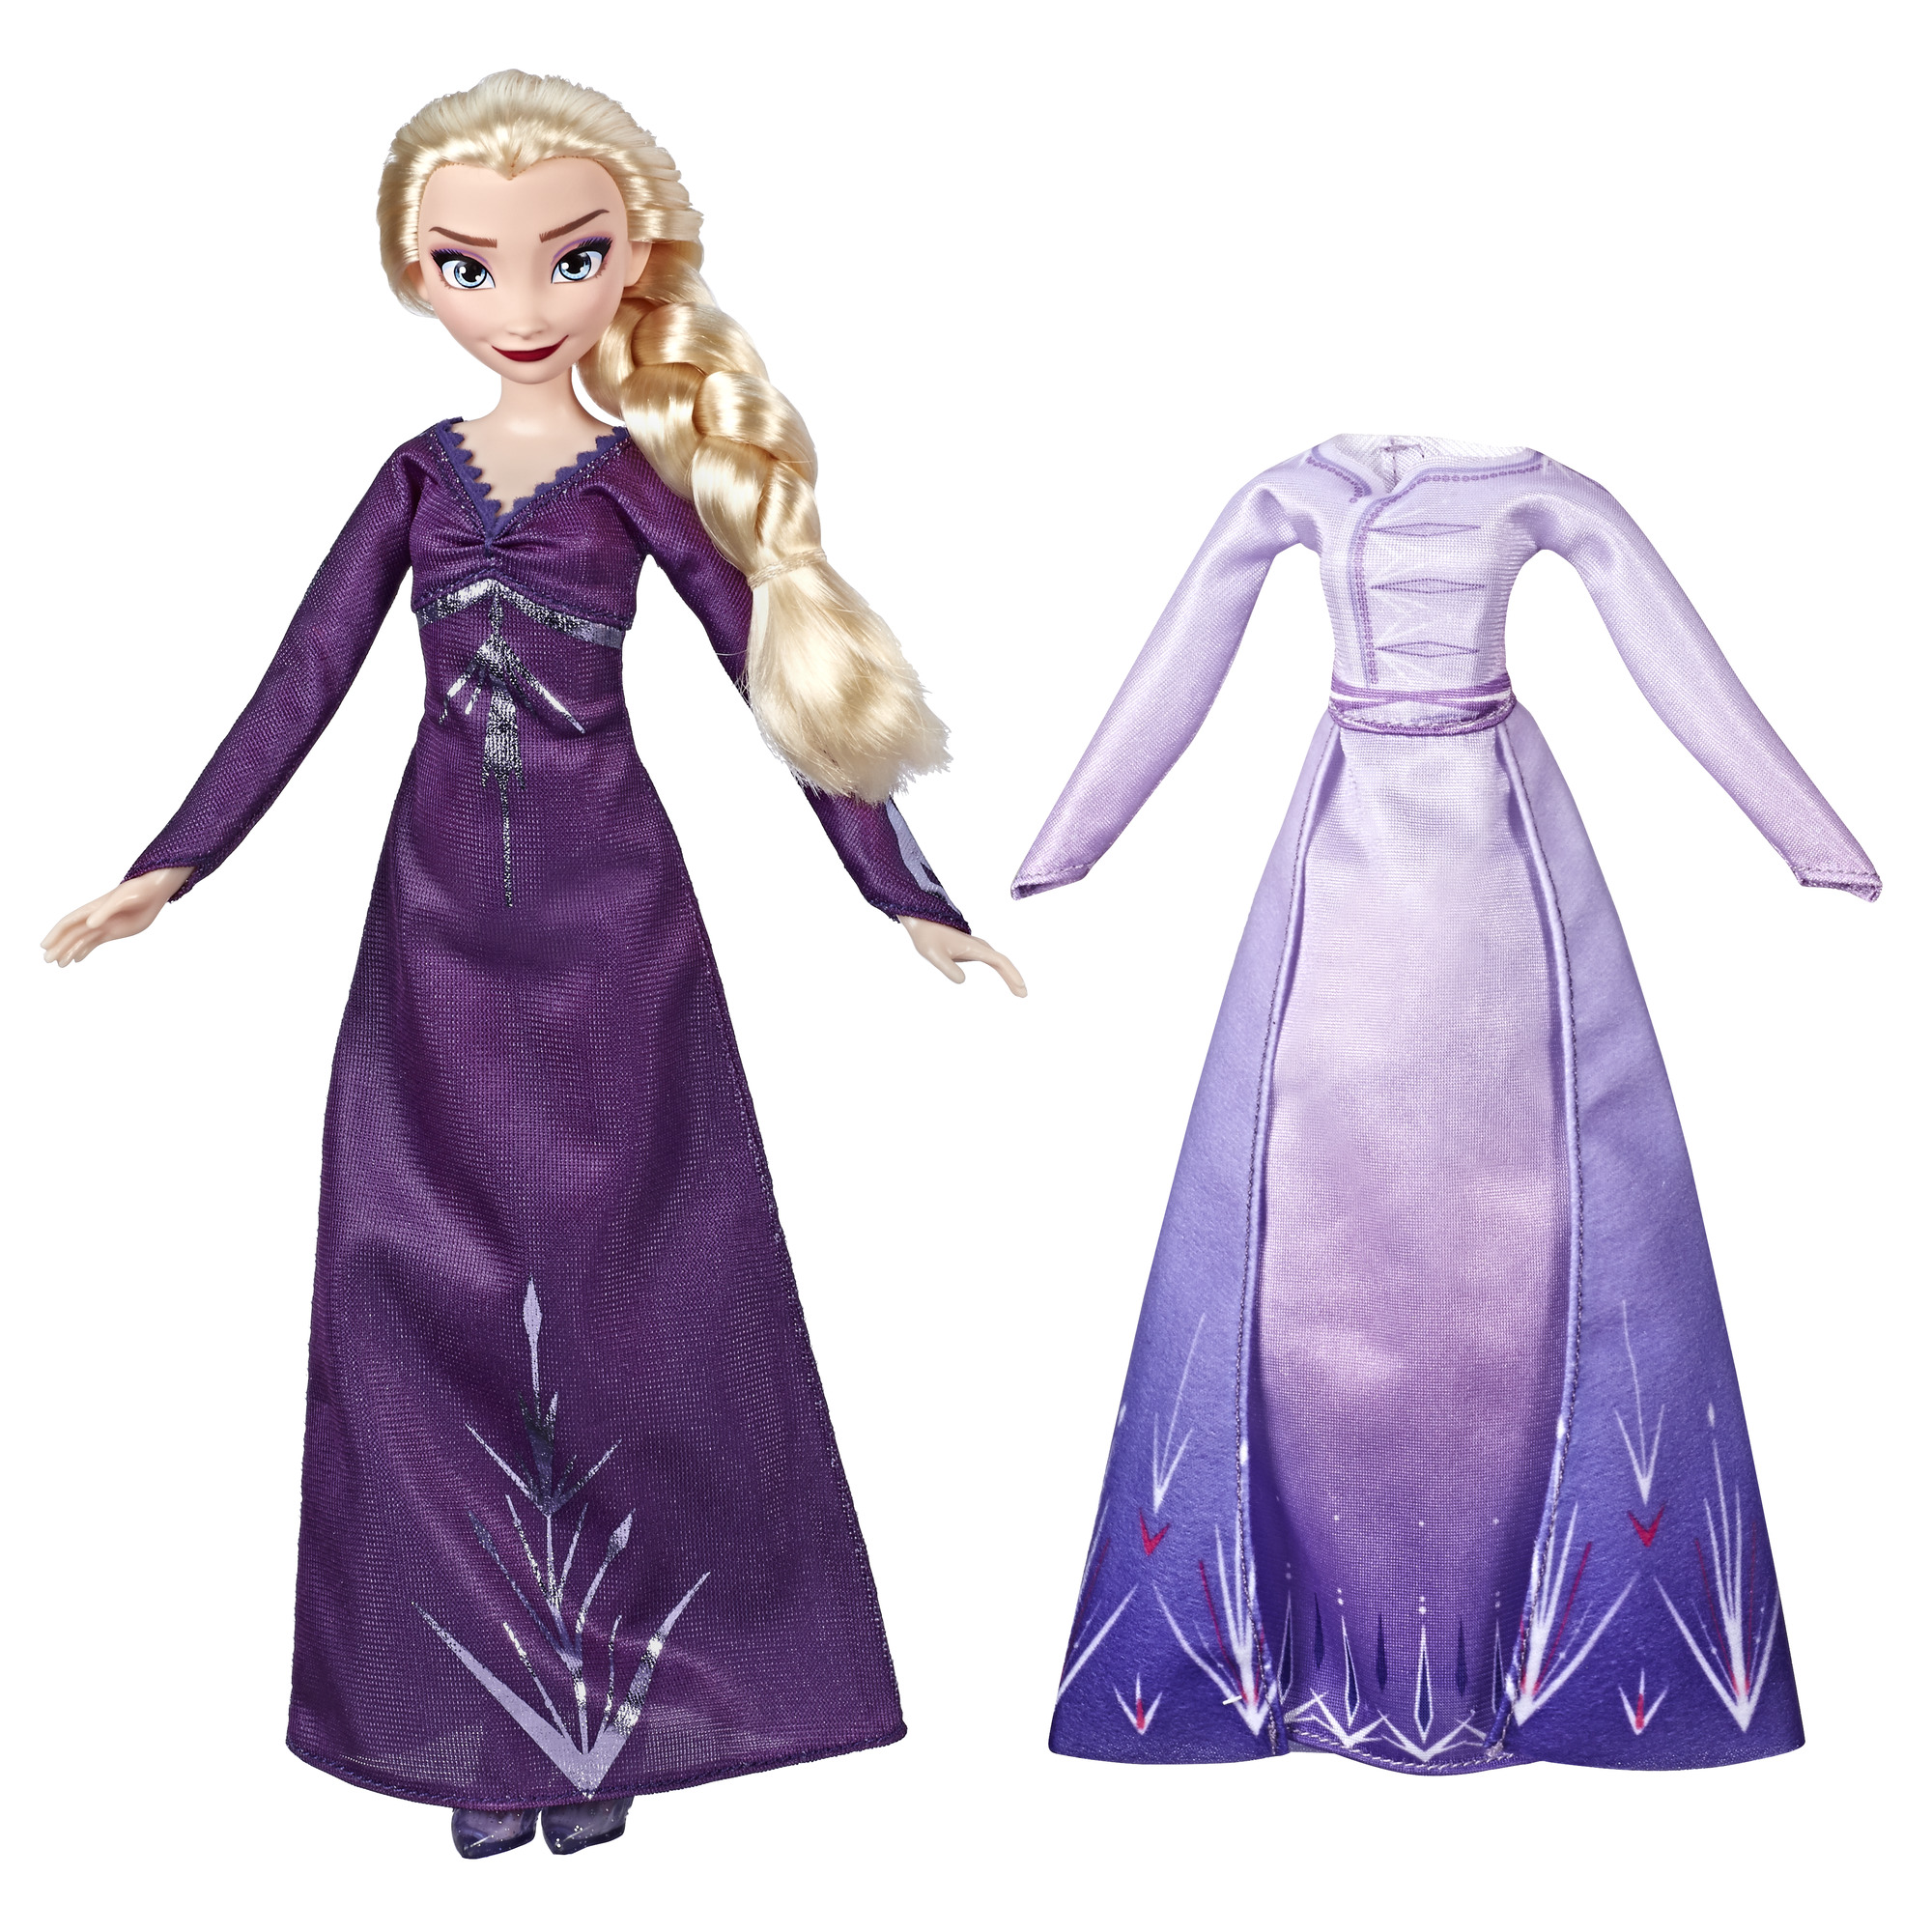 Disney Frozen 2 Arendelle Elsa Fashion Doll with Dress, Nightgown & Shoes